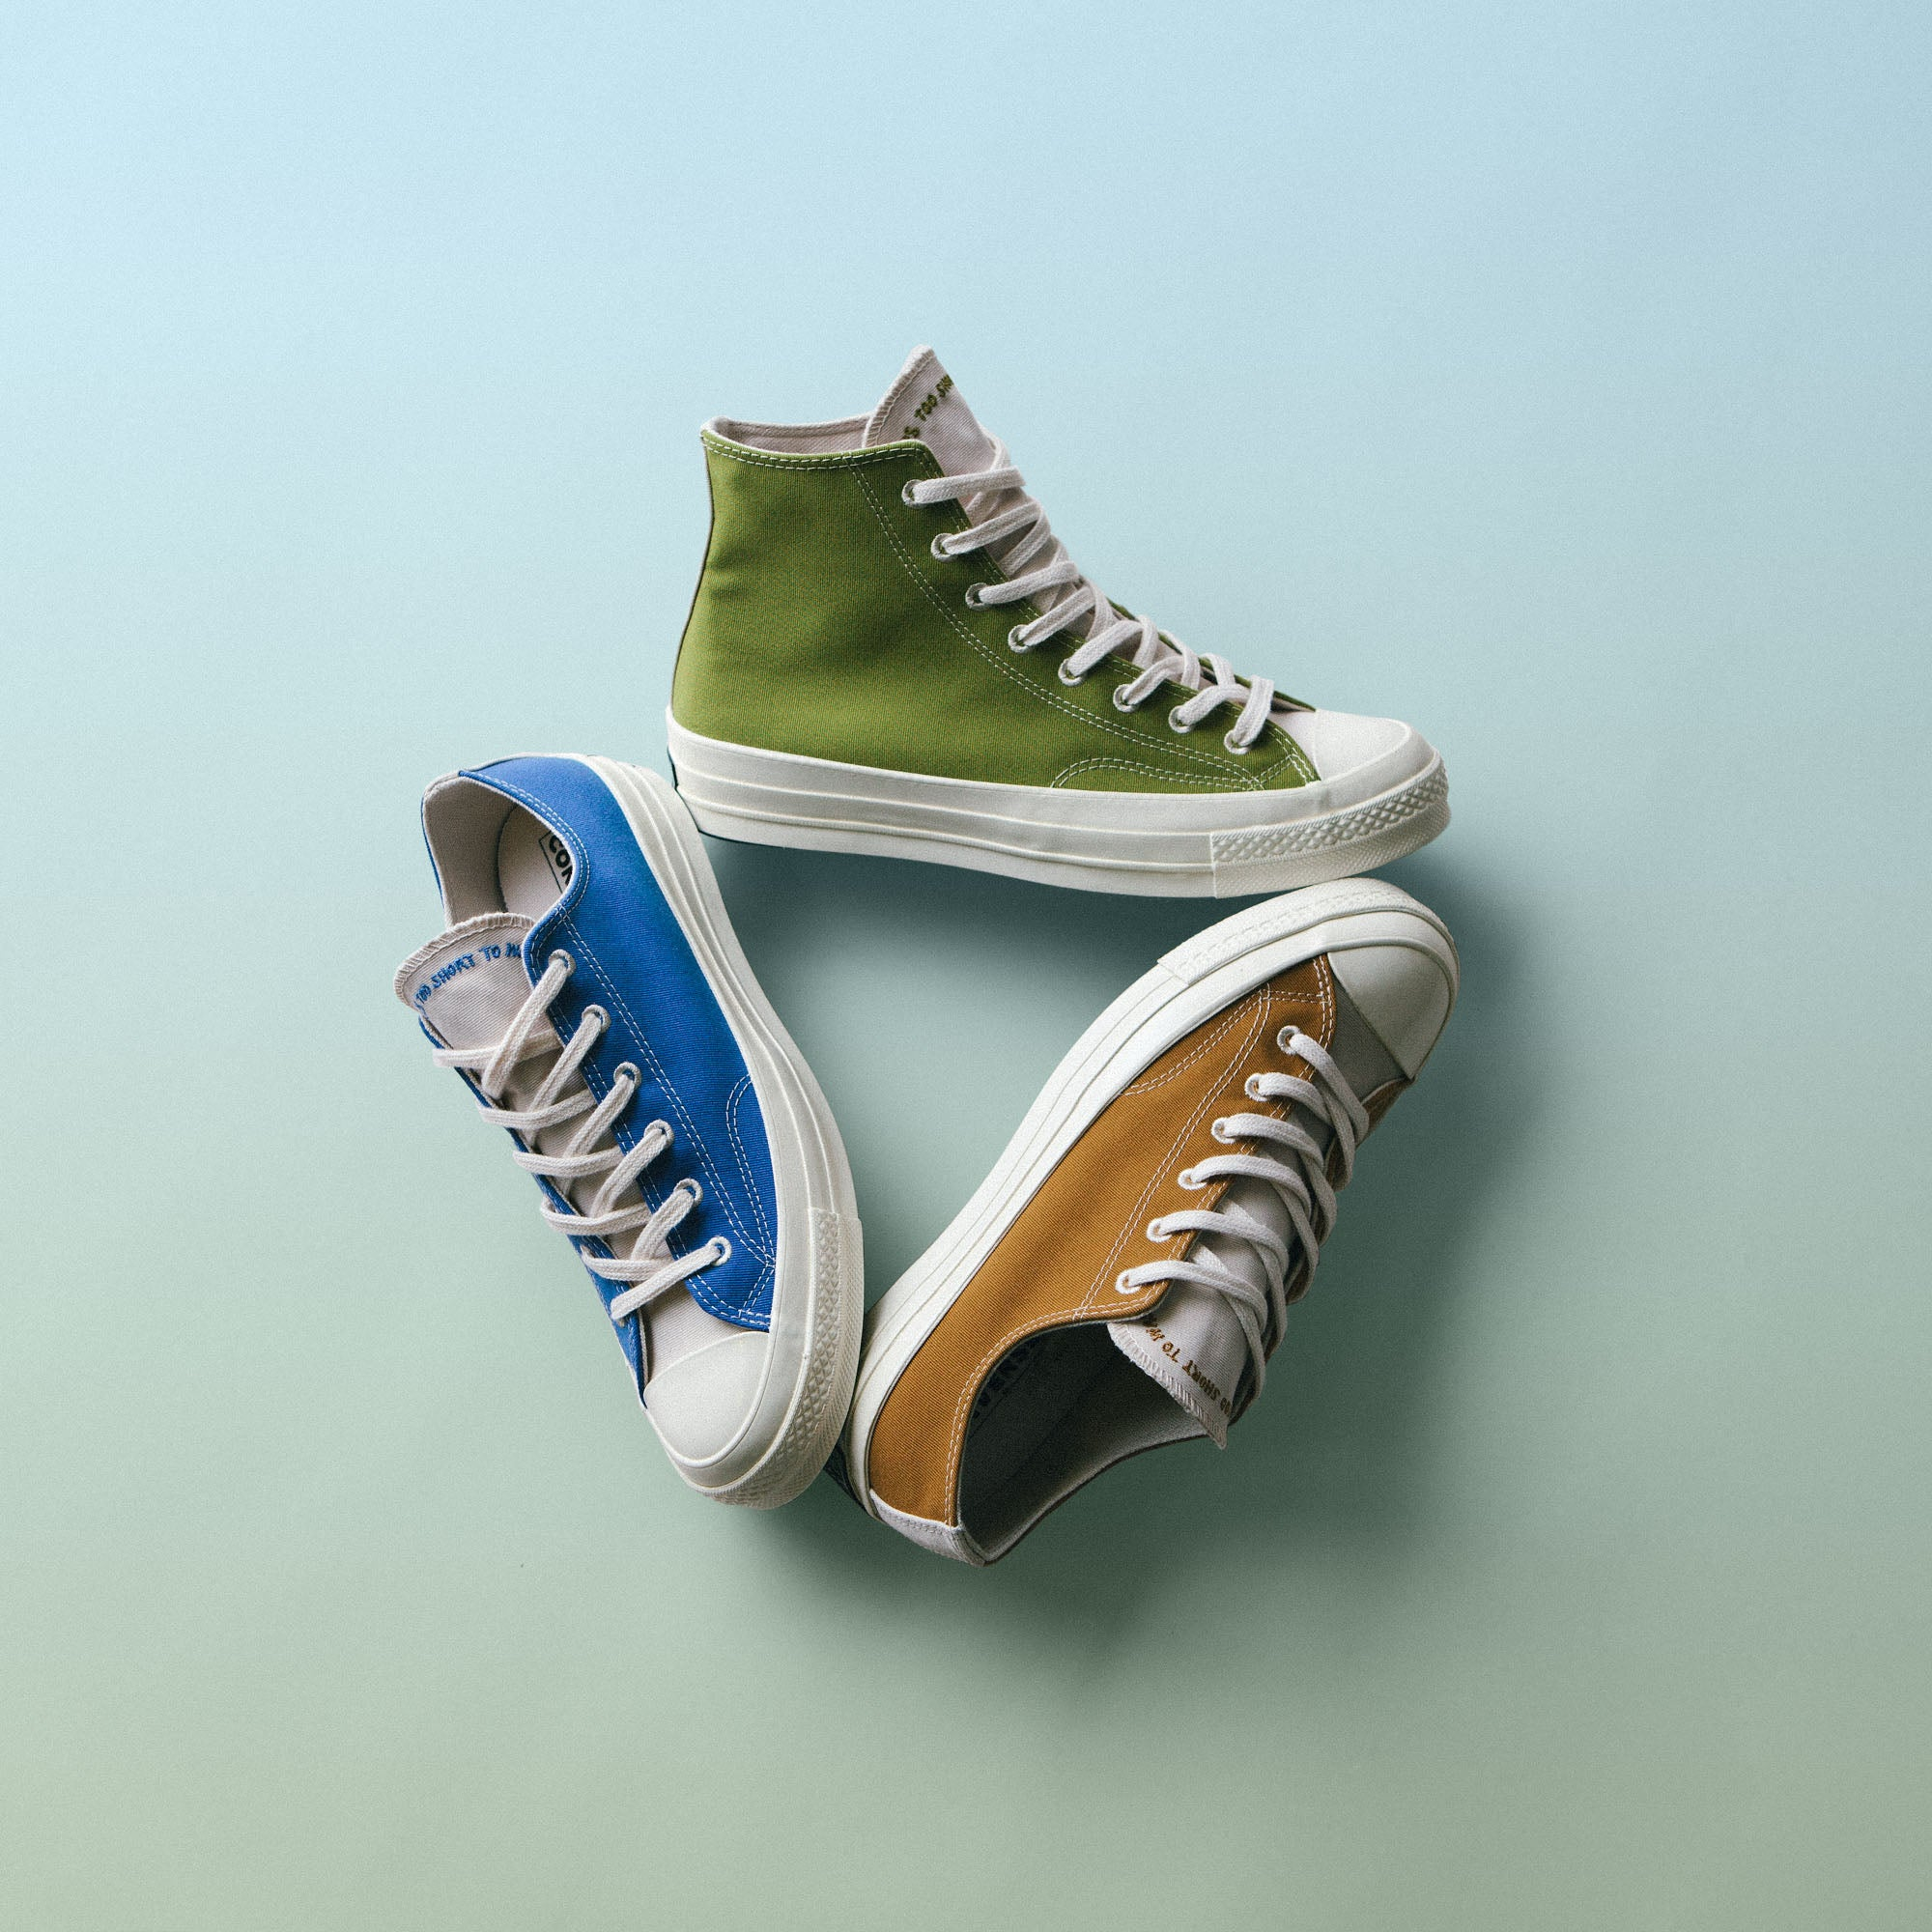 Converse 70's Renew Shoes: Sustainable Footwear | Flatspot